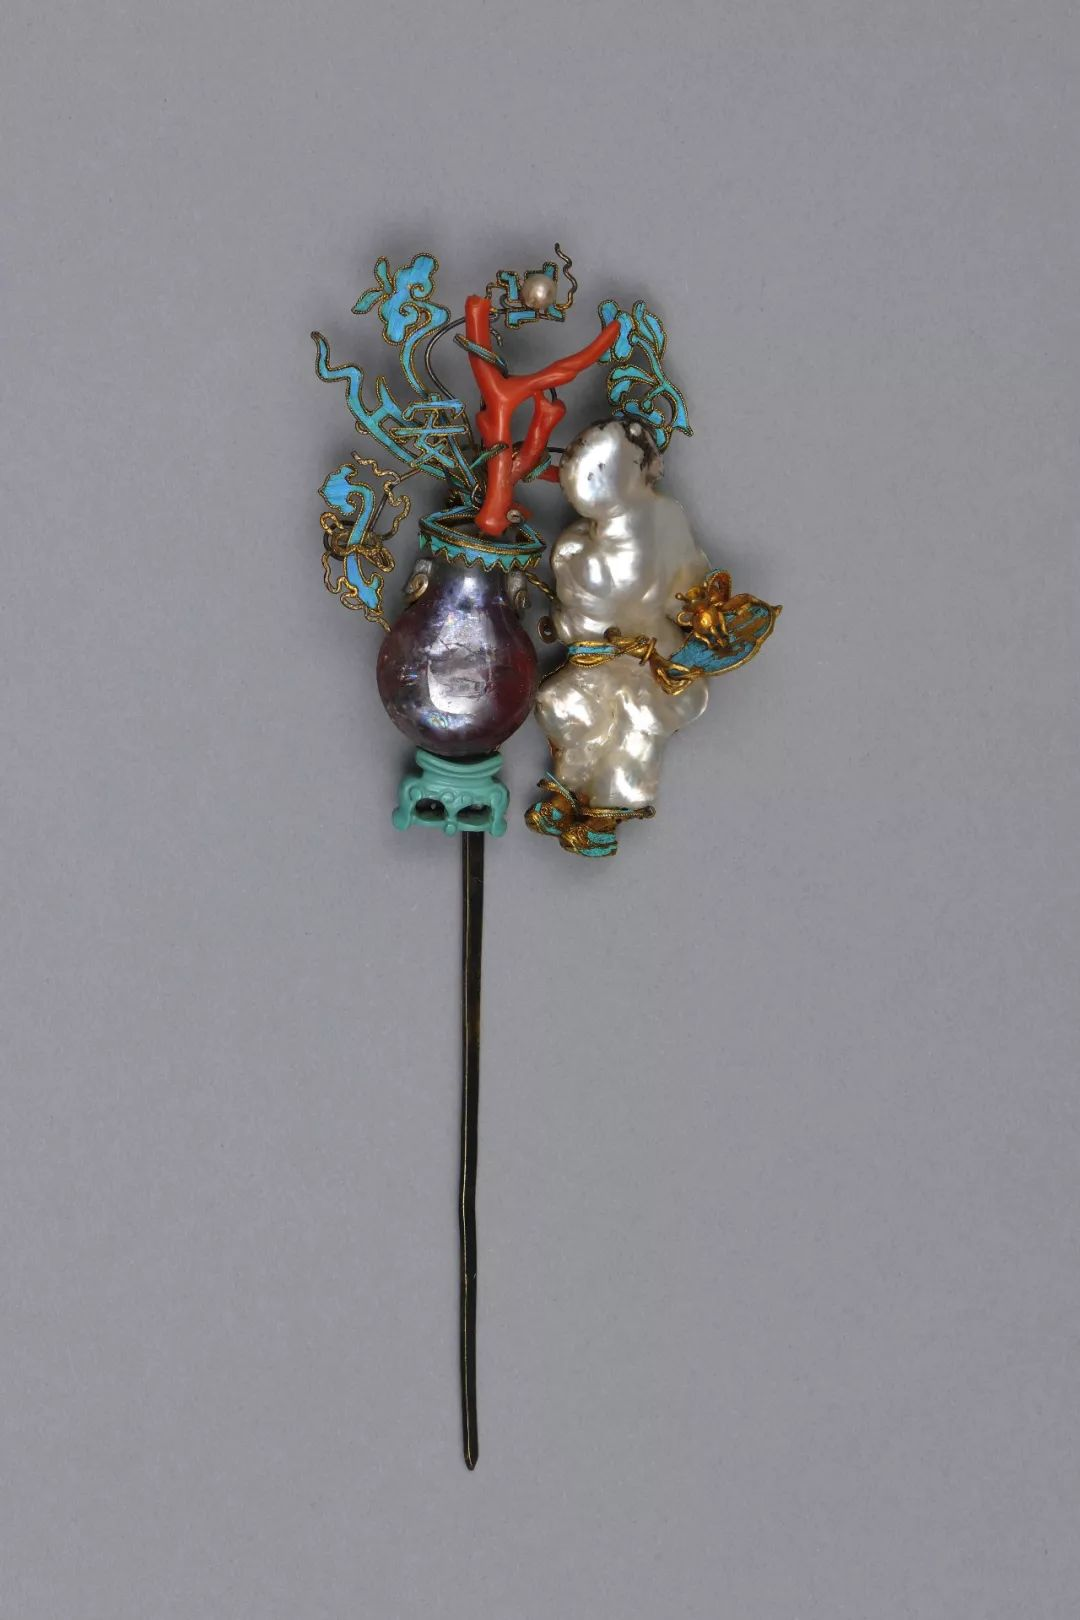 Hairpin with figure and vase. 18th or 19th c.